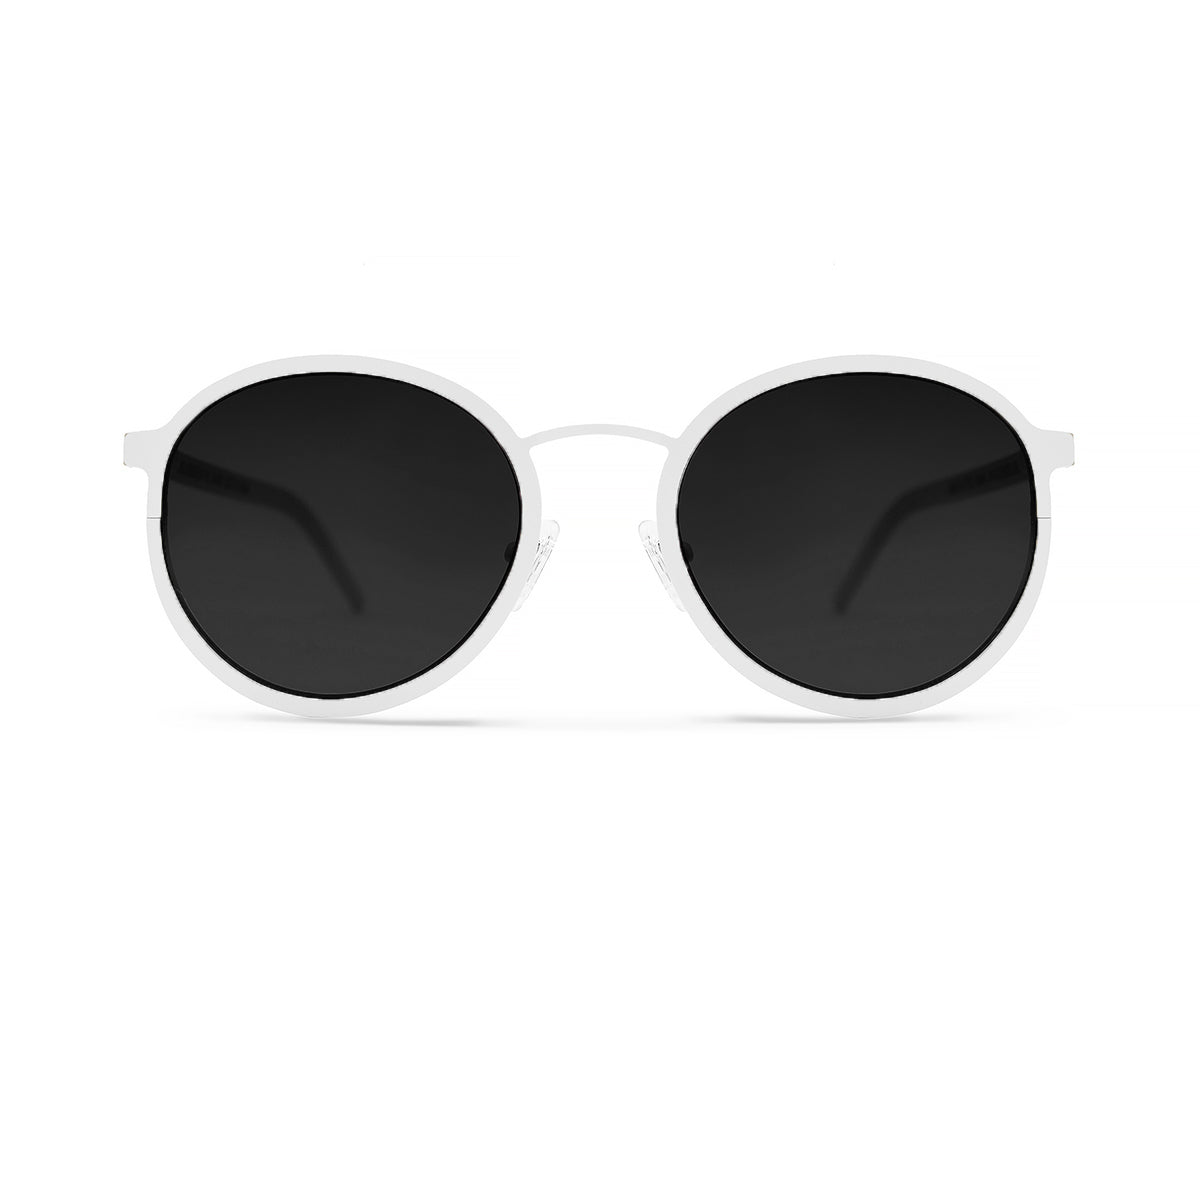 Metal. Porcelain. Black Lens. - BLYSZAK eyewear  - eyewear, optical, sunglasses